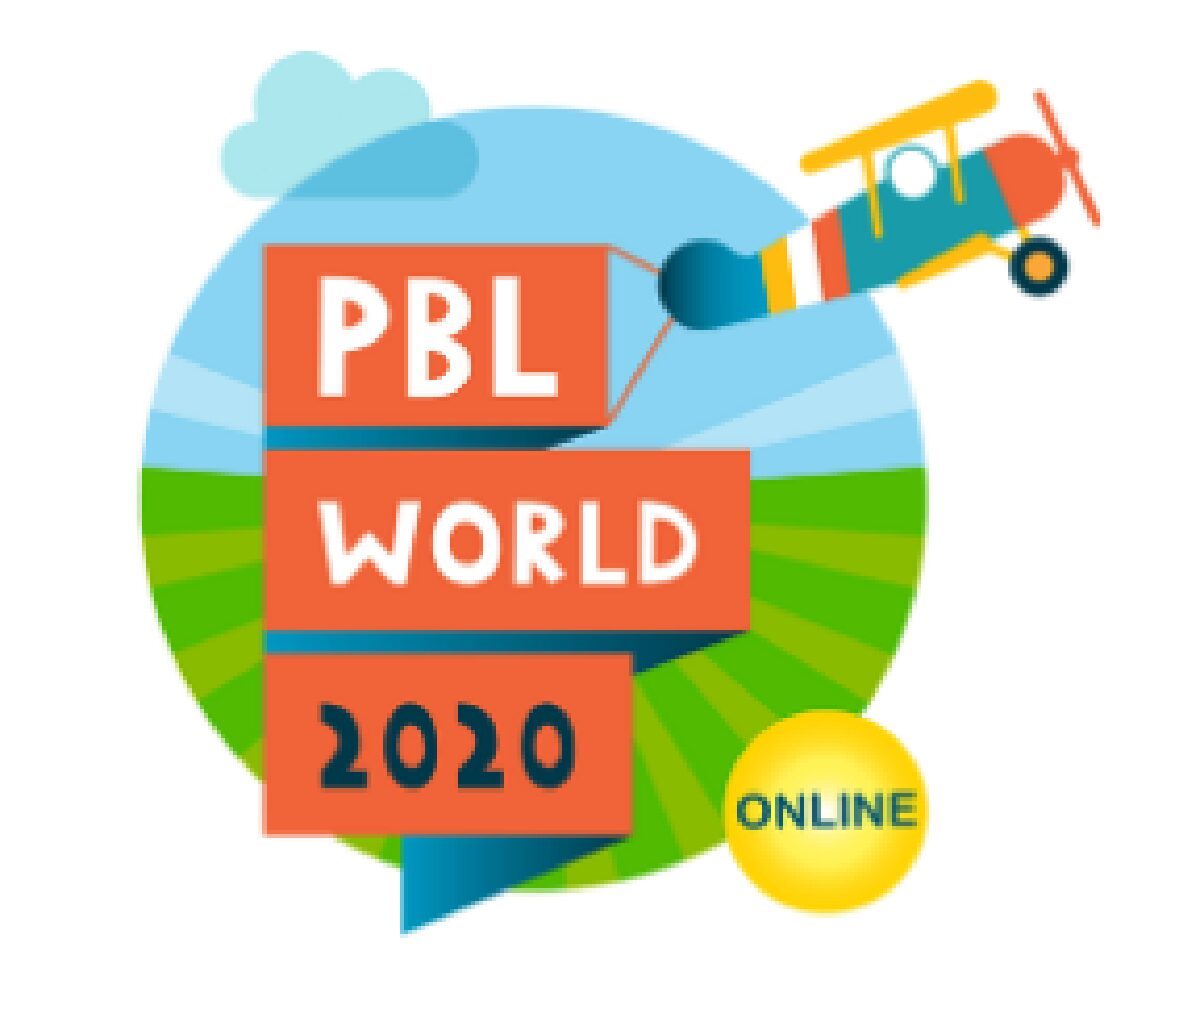 PBL World 2020 Moves to New Online Format while Delivering Same Immersive 3-day PBL Experience